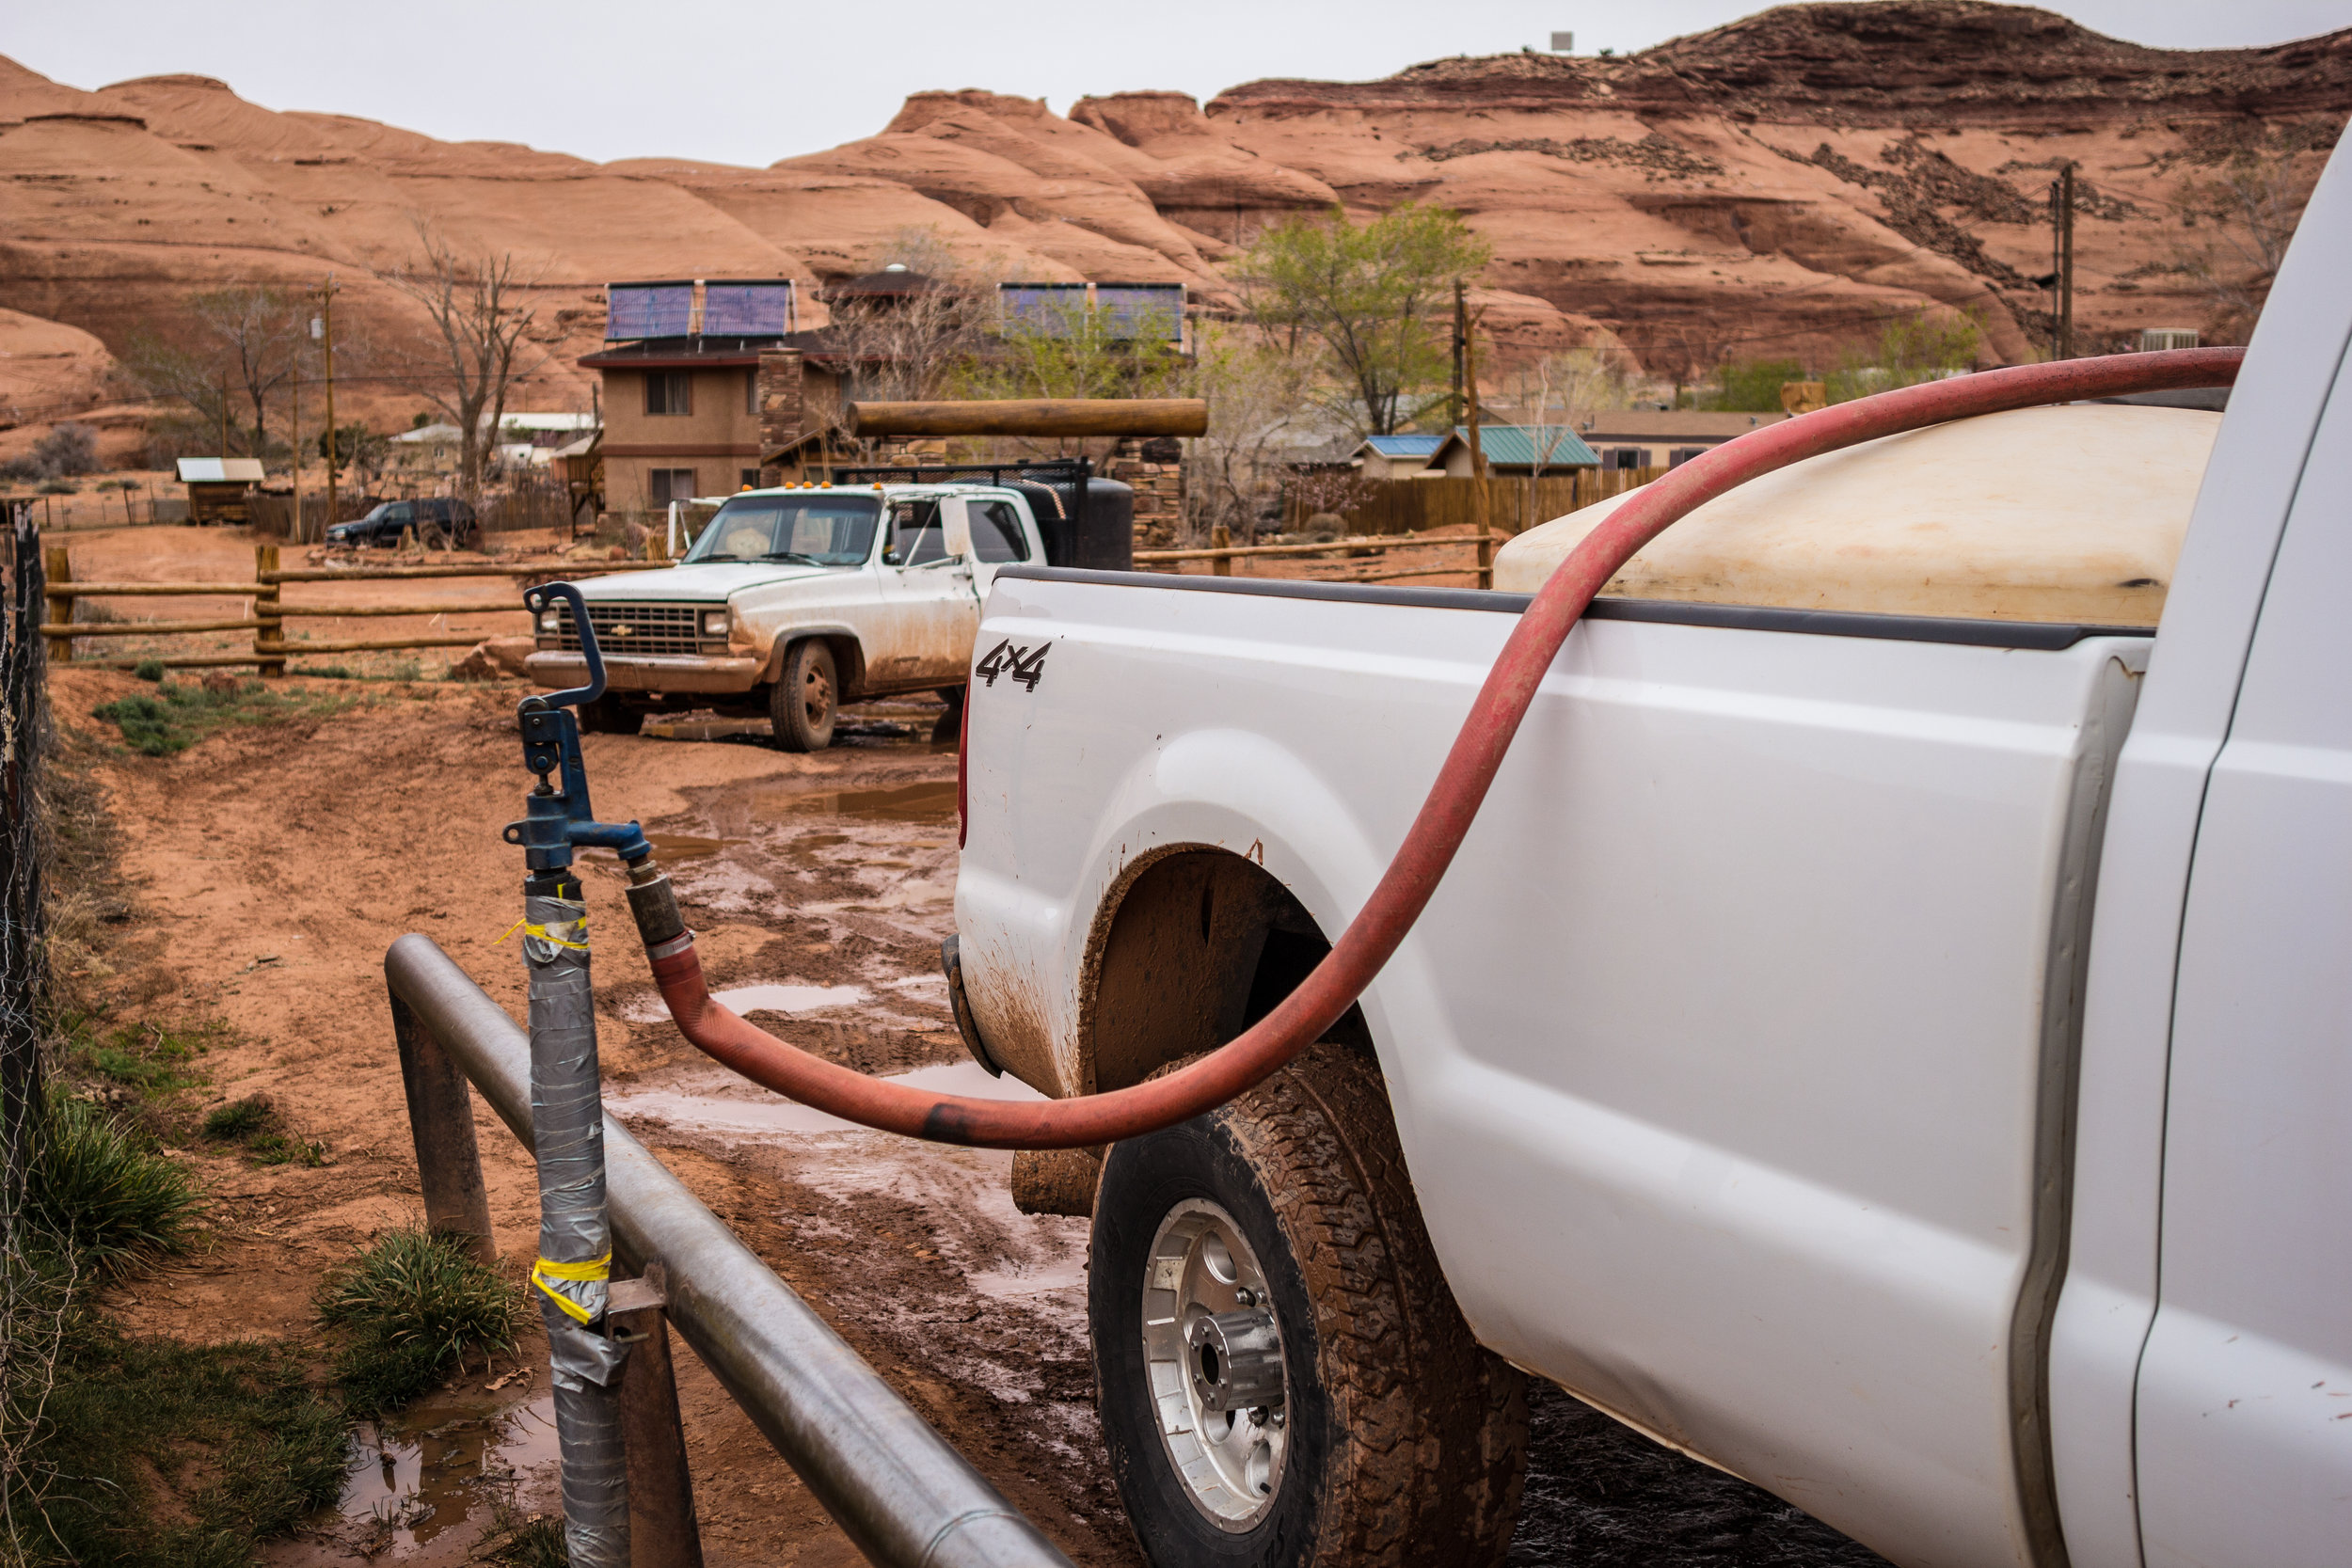 Will Yazzie's tank slowly fills in the back of his truck. This is the only way his family has access to clean drinking water. It takes about an hour each way to drive to the water tap at the center of the community and sometimes waiting for your turn in line can take even longer.